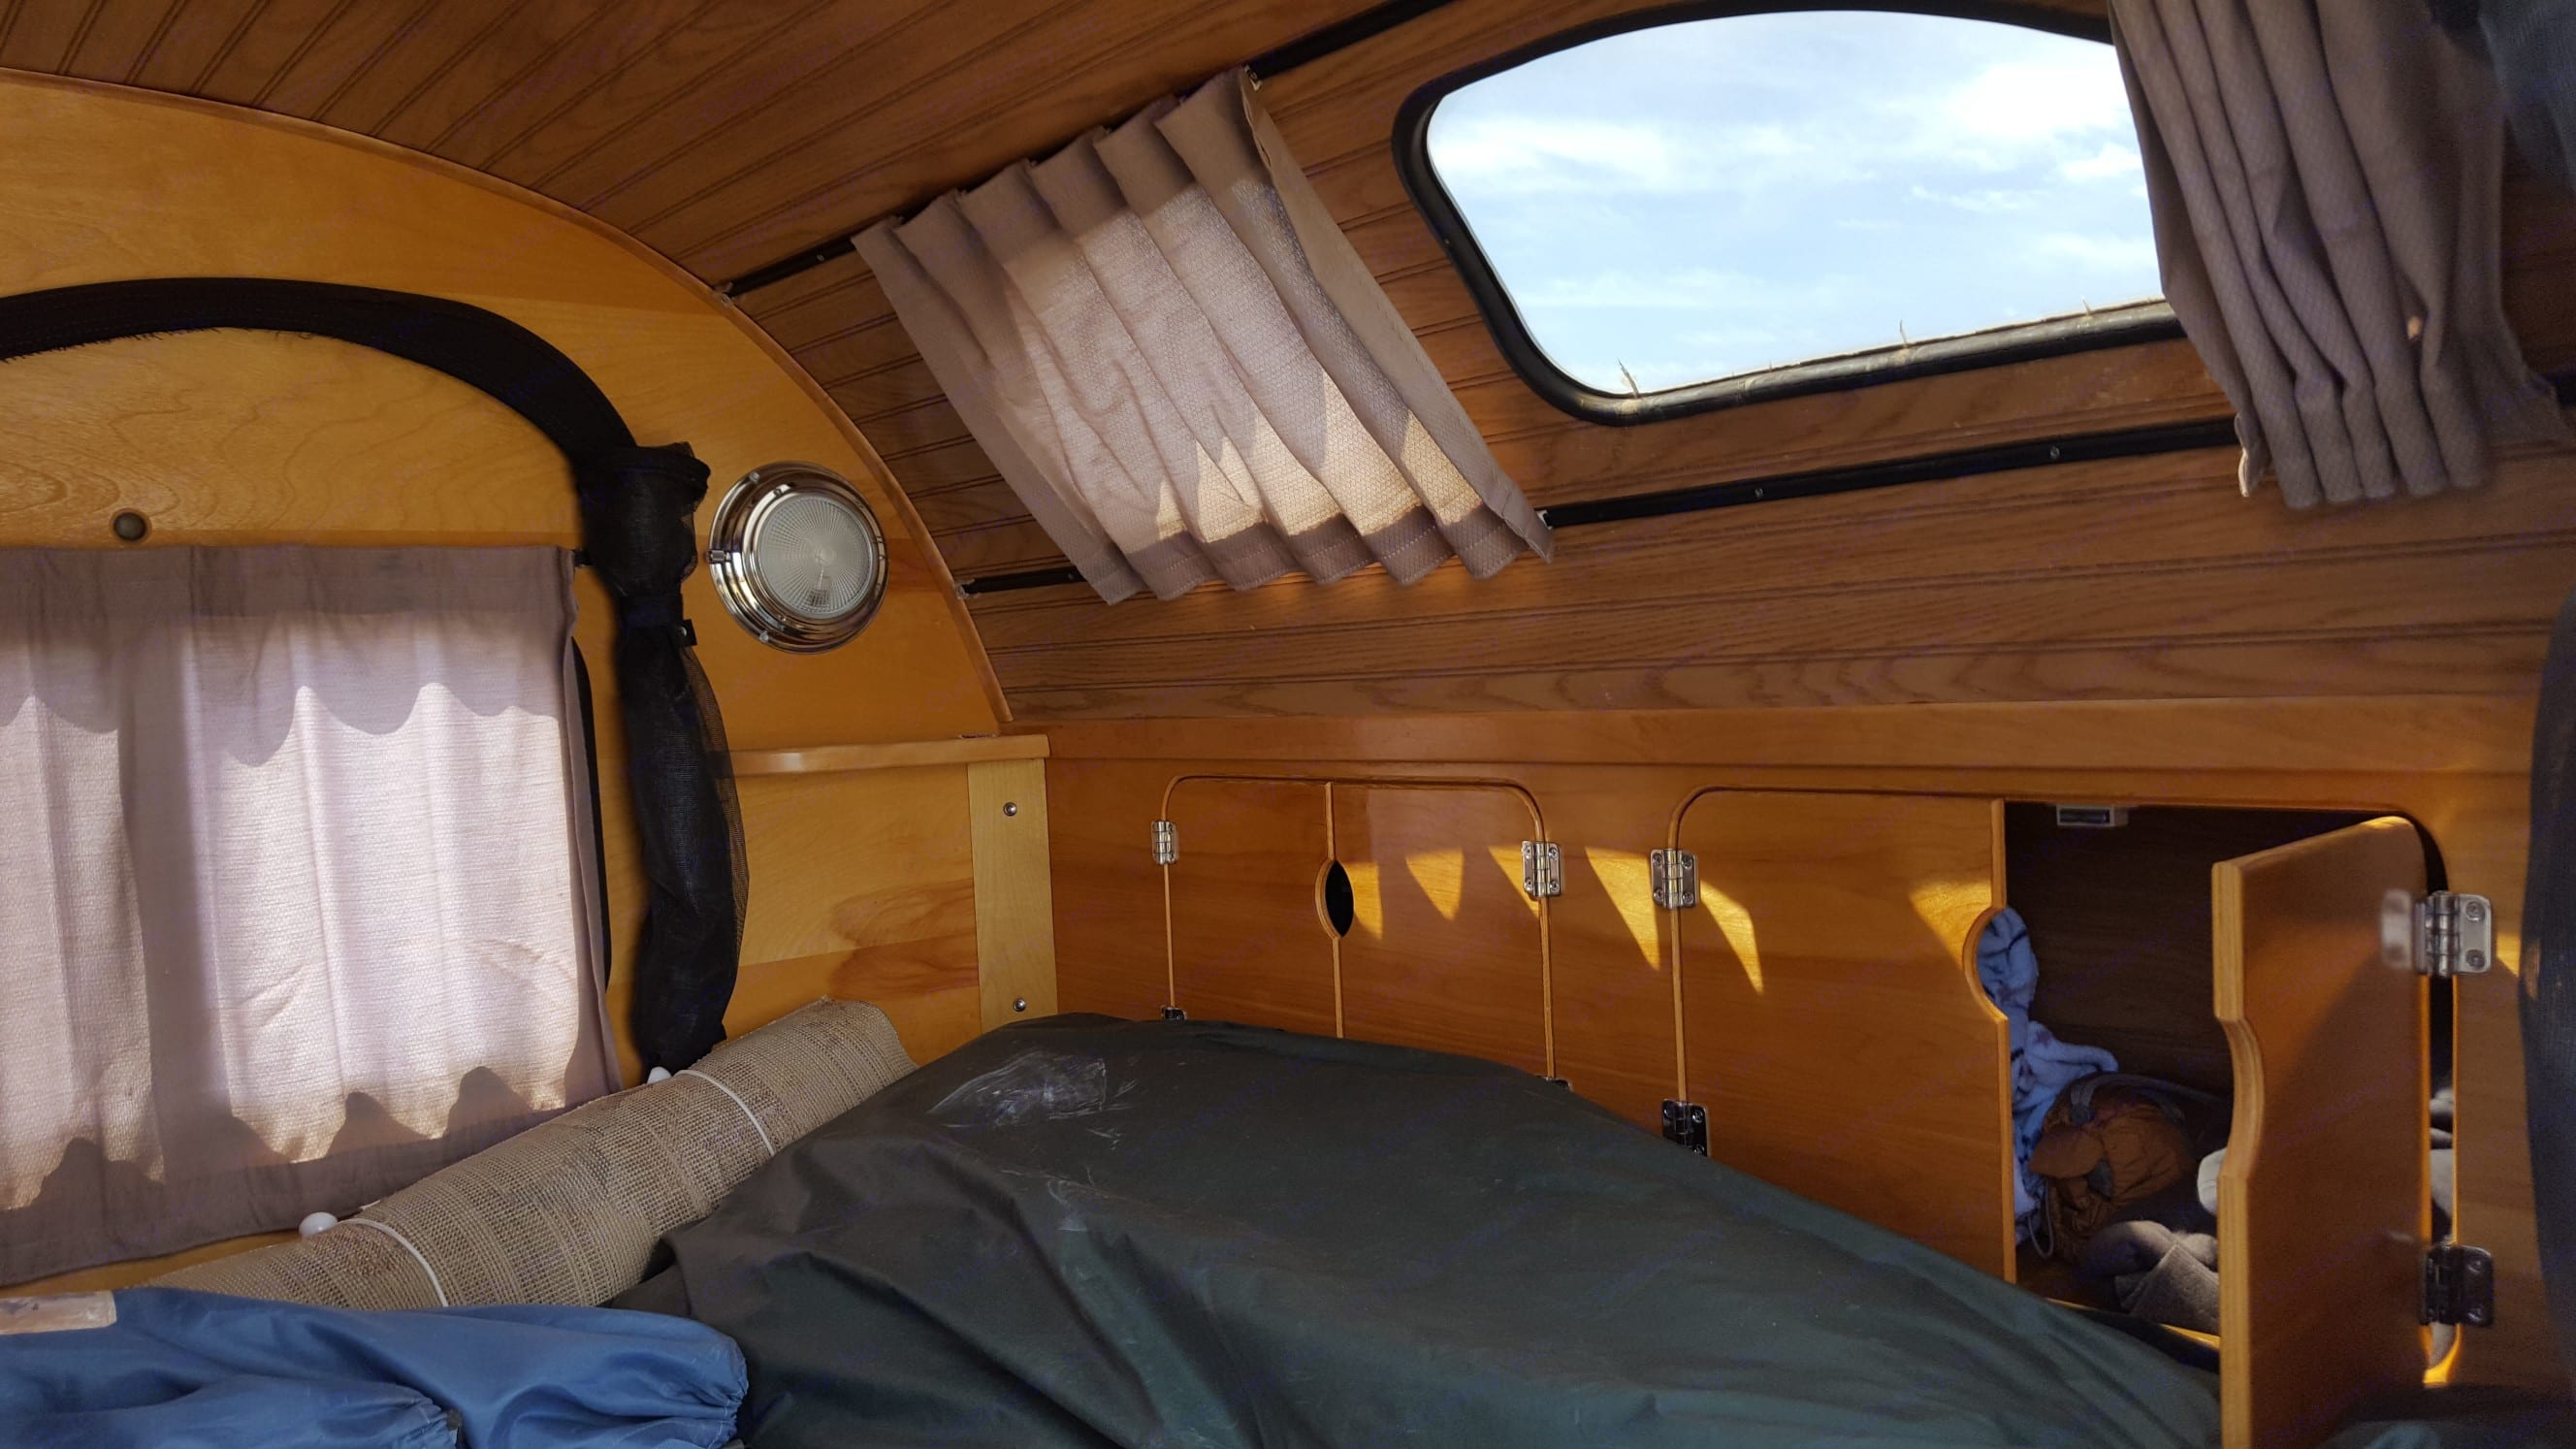 This window is great for view the night sky while going to sleep. Camp-Inn 550 Teardrop 2006